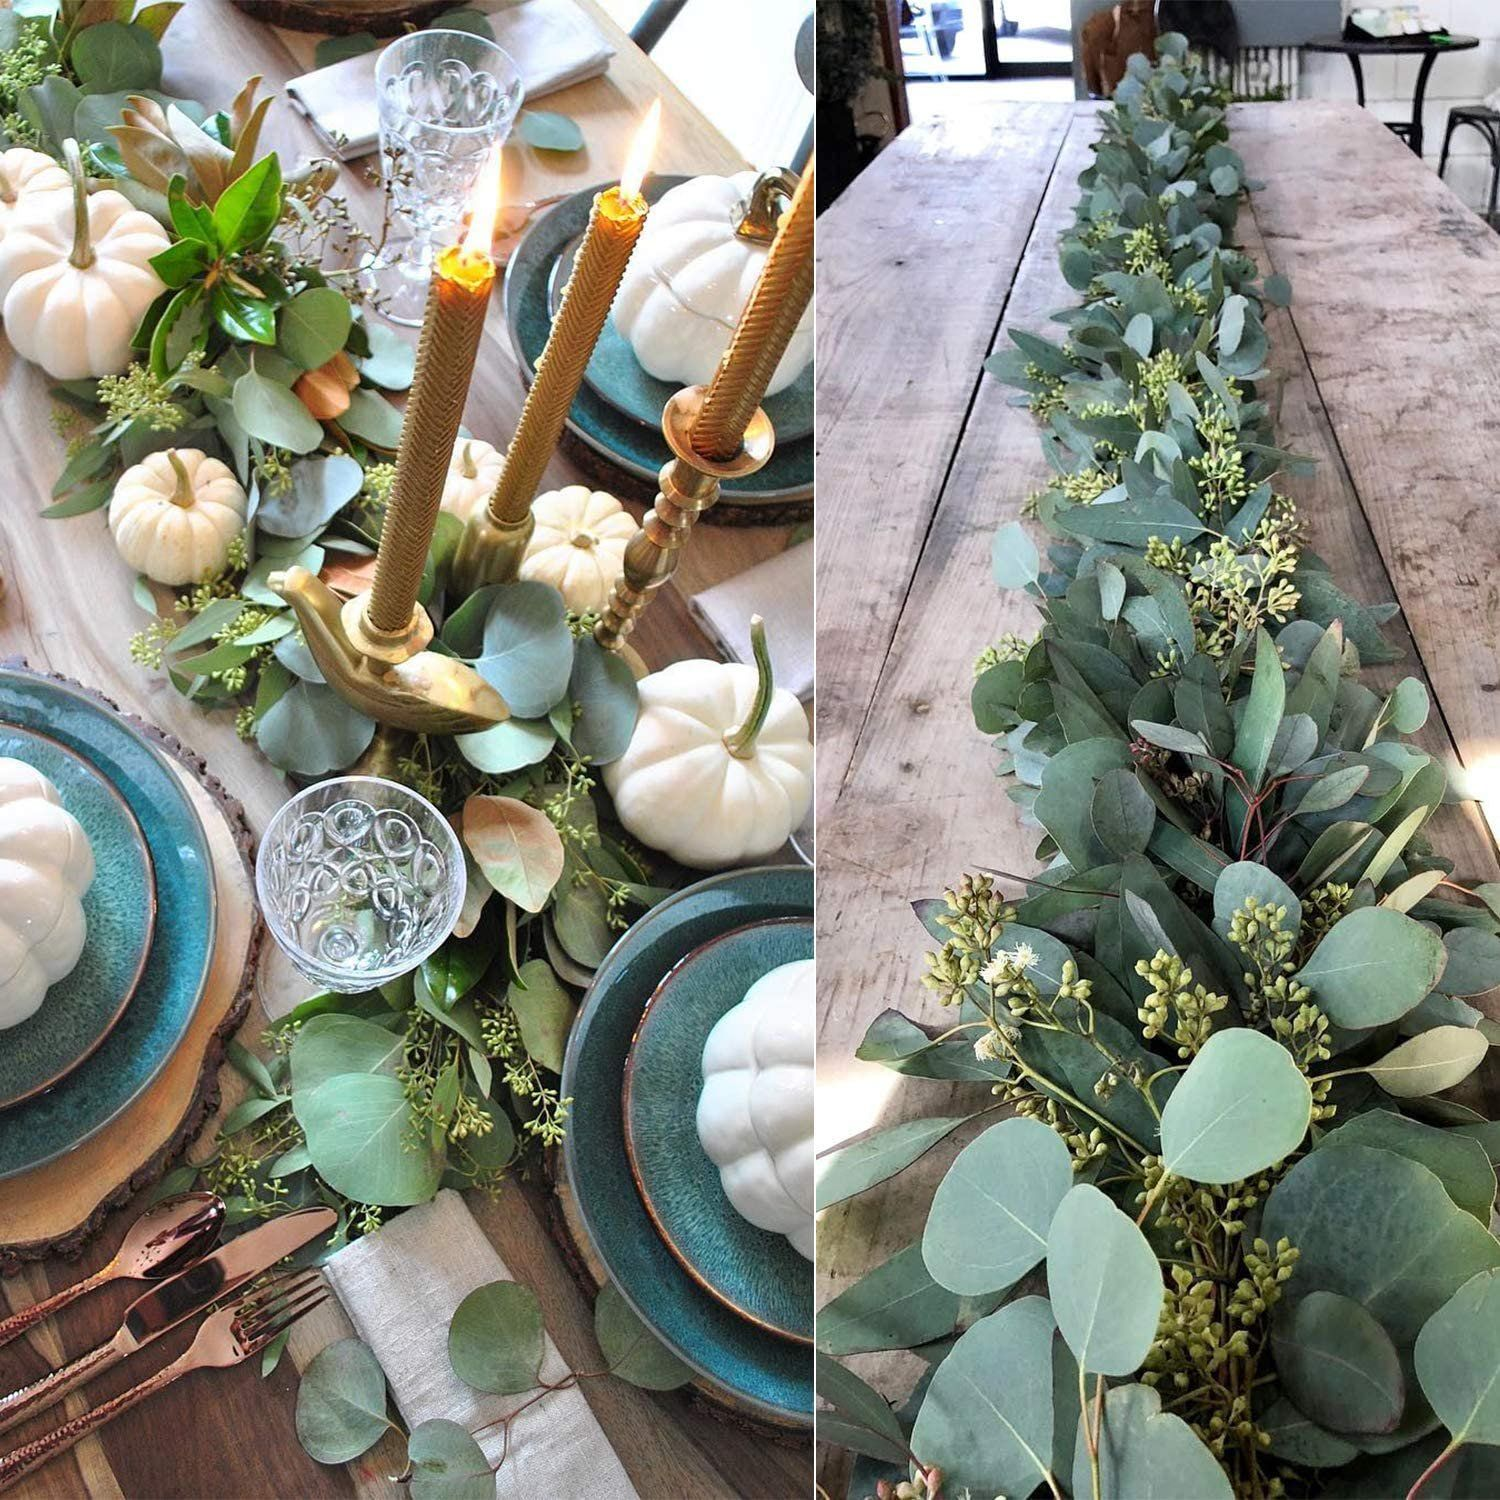 Coolmade 5.5Ft Seeded Eucalyptus Garland, Artificial Vines Faux Eucalyptus Leaves Table Garland Artificial Eucalyptus Garland Greenery Wedding Backdrop Arch Wall Decor - Walmart.com